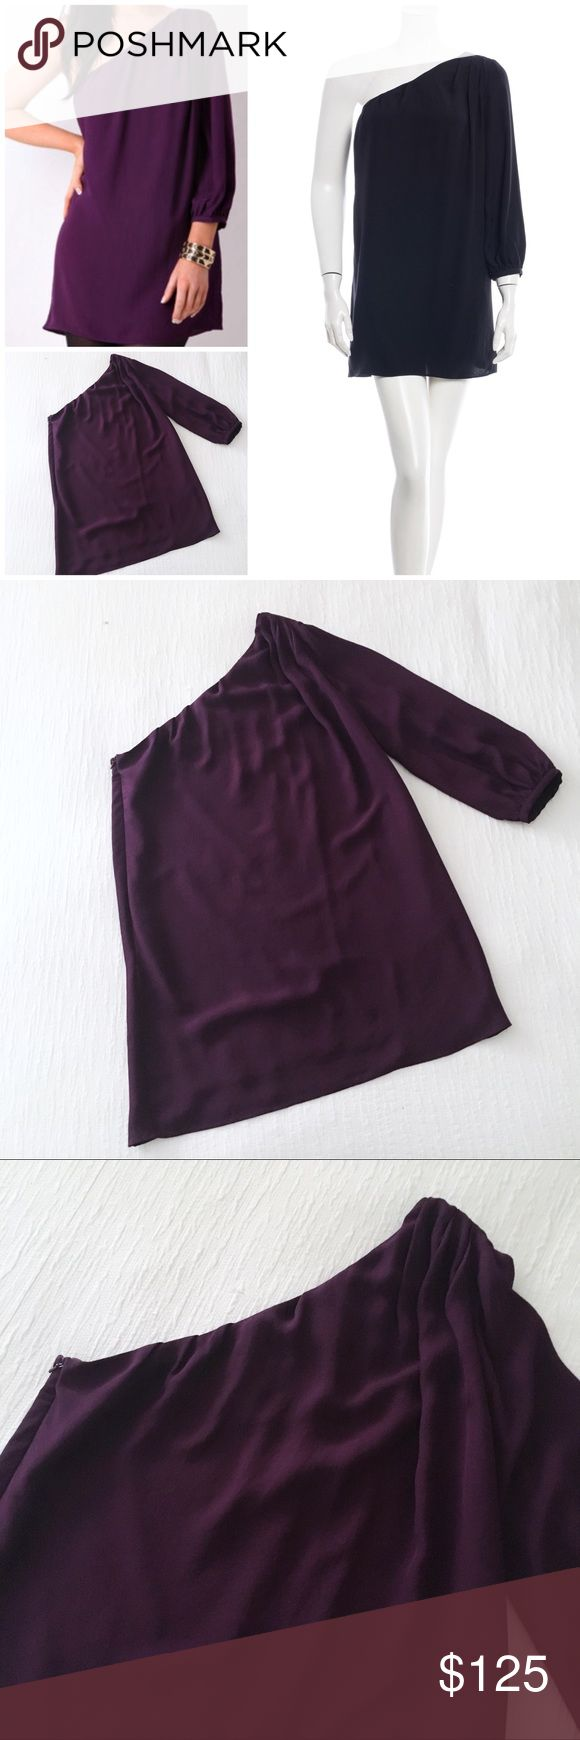 """elizabeth & james one shoulder dress in eggplant 87/13 triacetate/poly blend, silk/nylon lining. Laid flat measures 31"""" shoulder to hem, 17.5"""" across the bust, 20"""" sleeve. No flaws to note, in gently worn condition Elizabeth and James Dresses One Shoulder"""